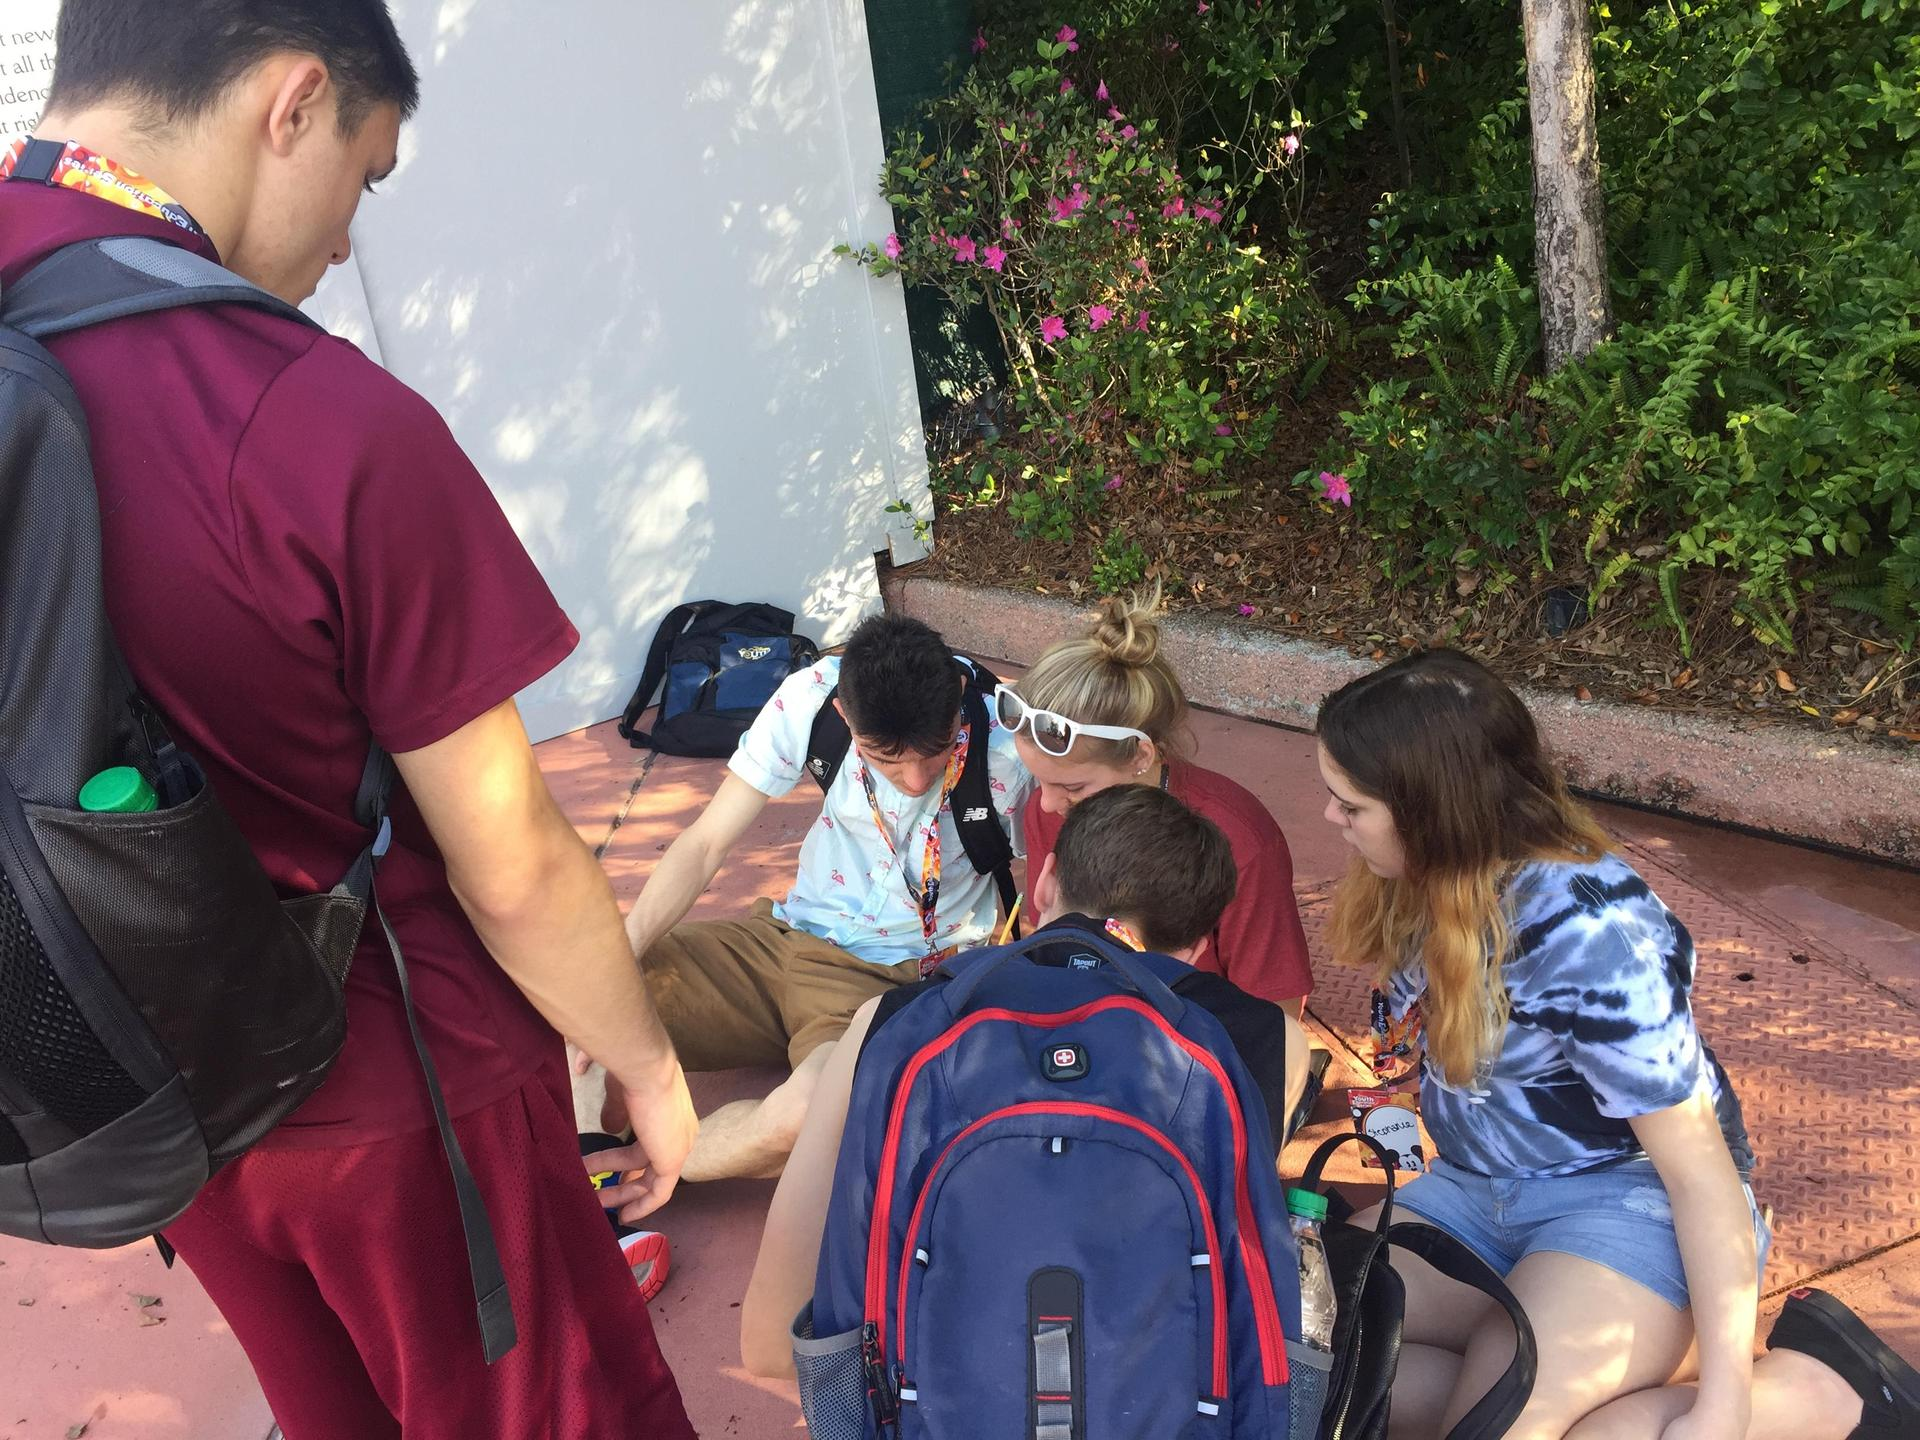 Students complete their task at Disney's EPCOT